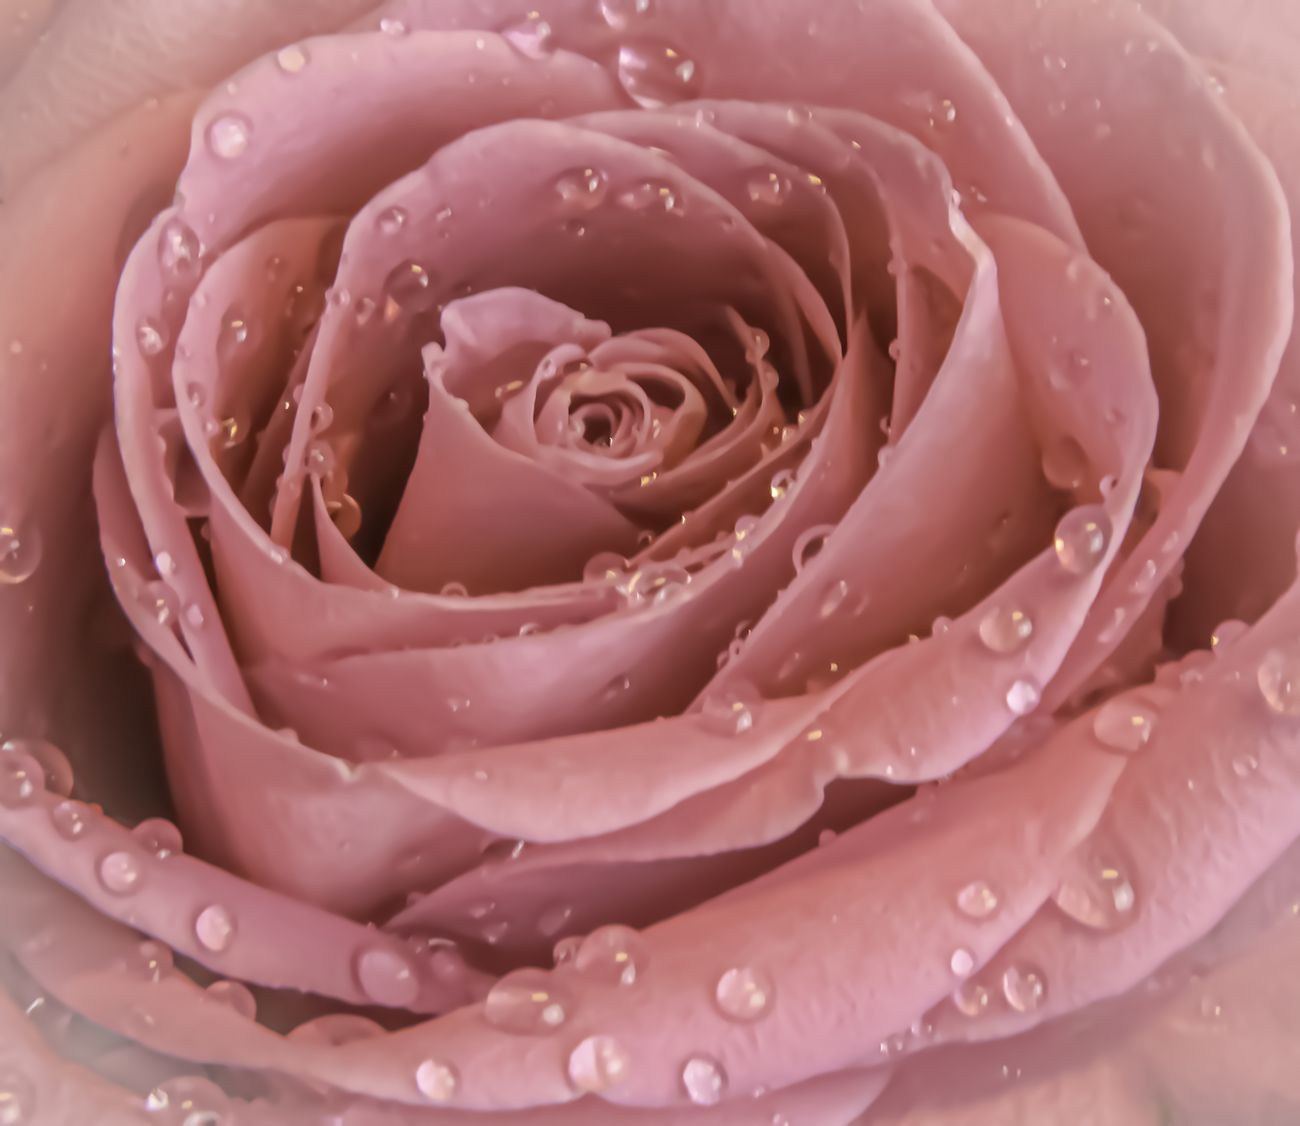 Pink rose droplets closeup